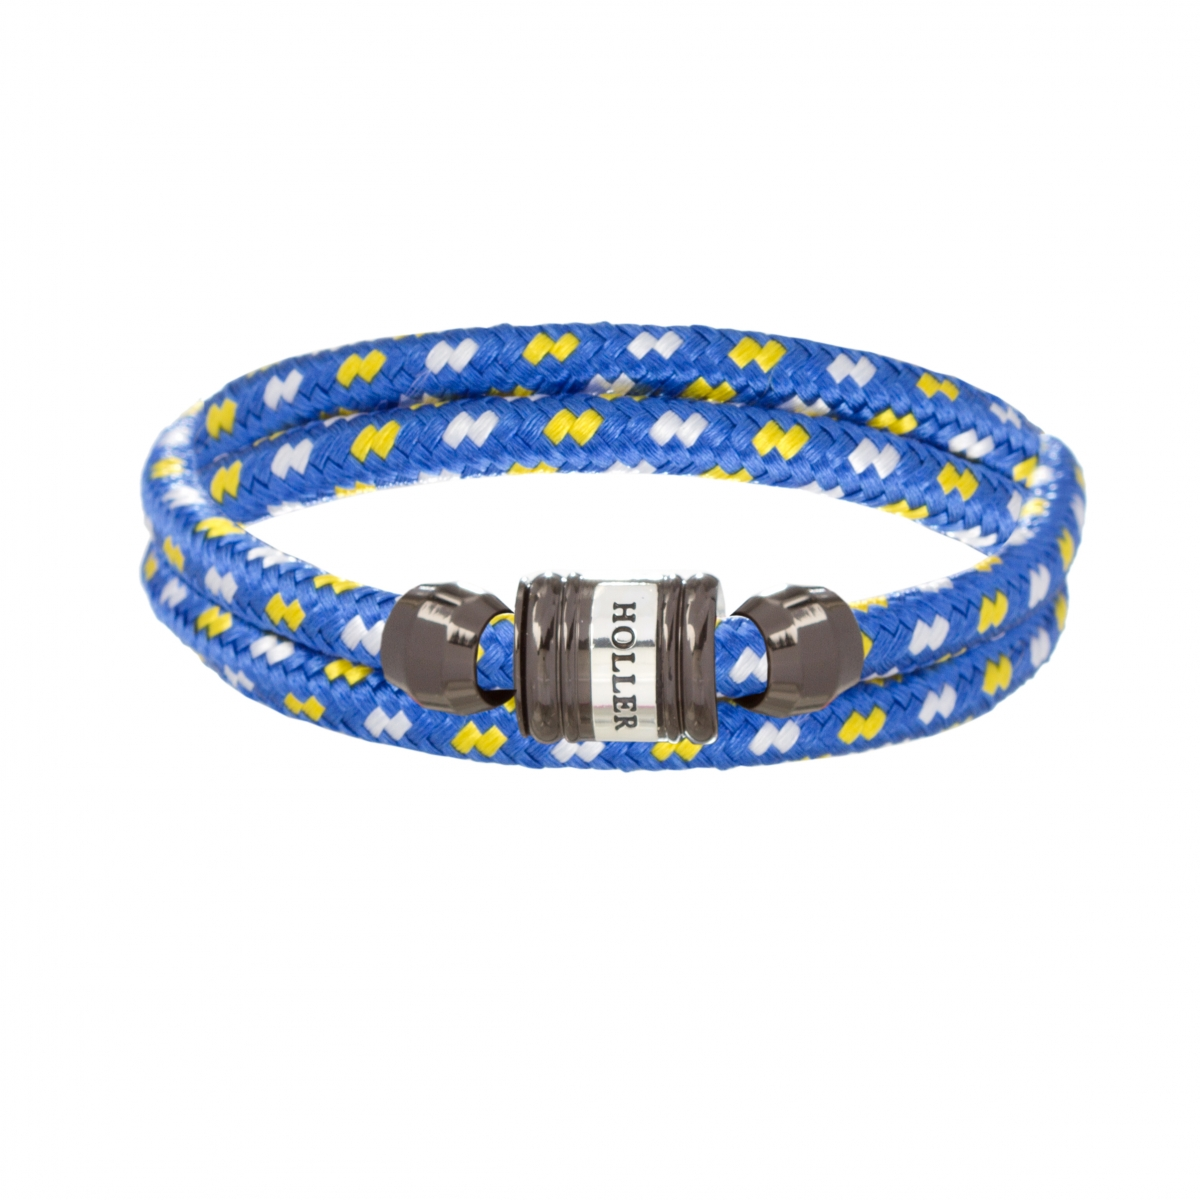 Bailey Black Polished Barrel / Blue, White and Yellow Paracord Bracelet